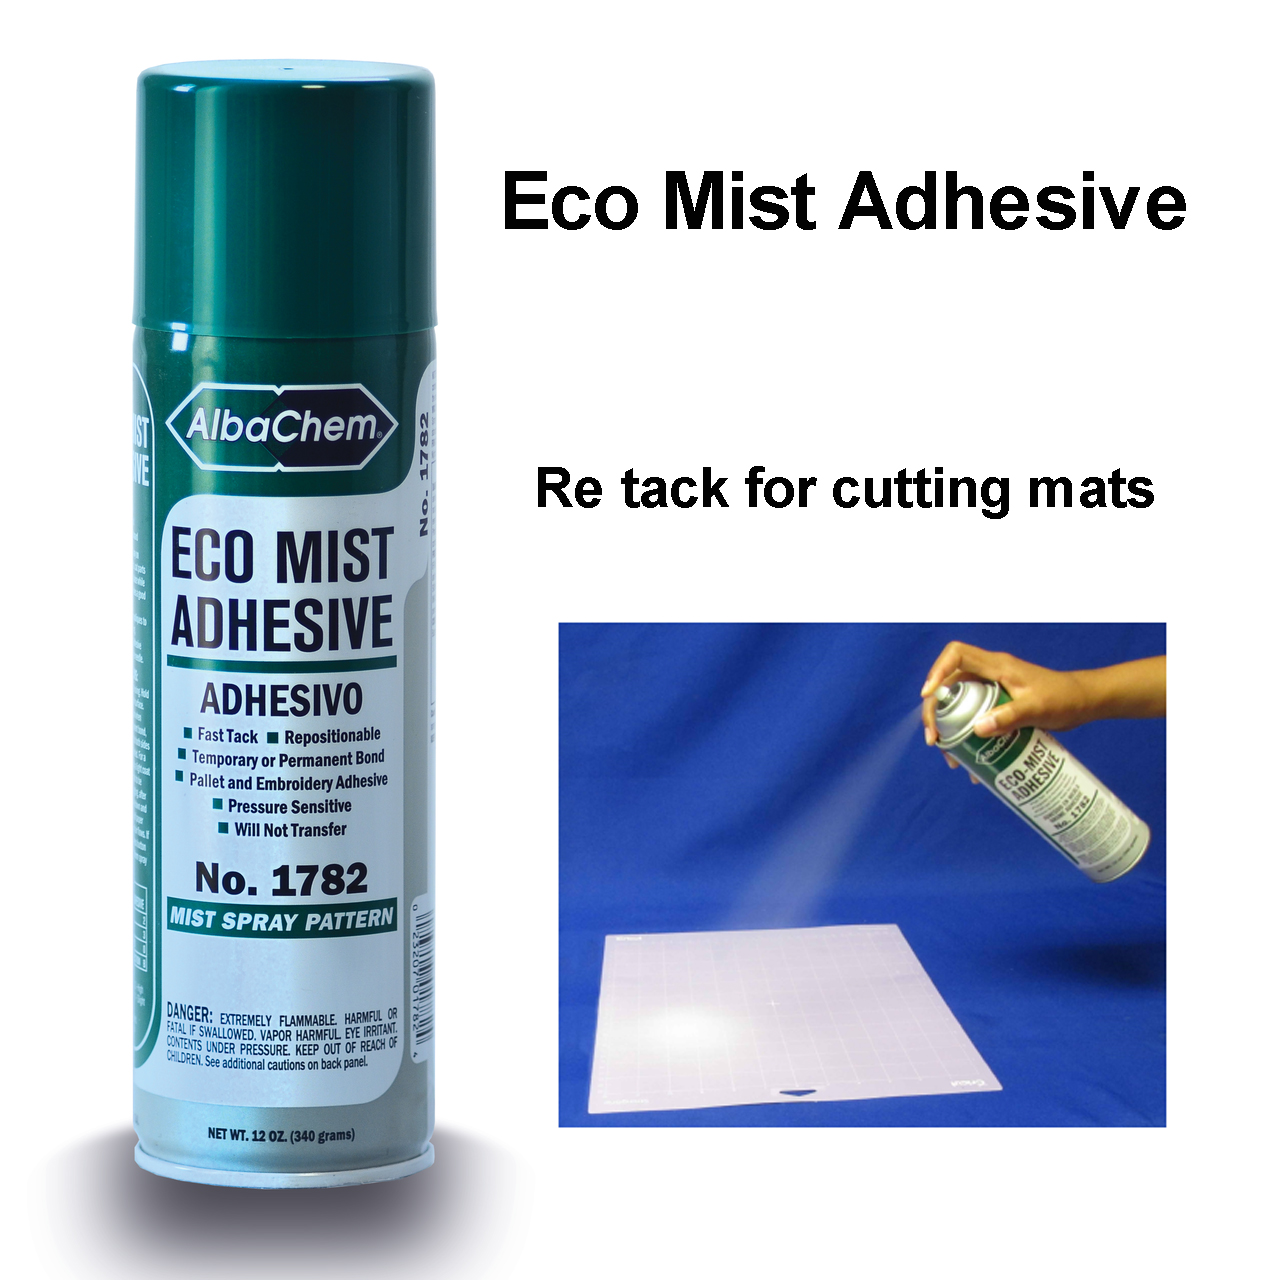 ECO mist adhesive for re tacking cutting mats.